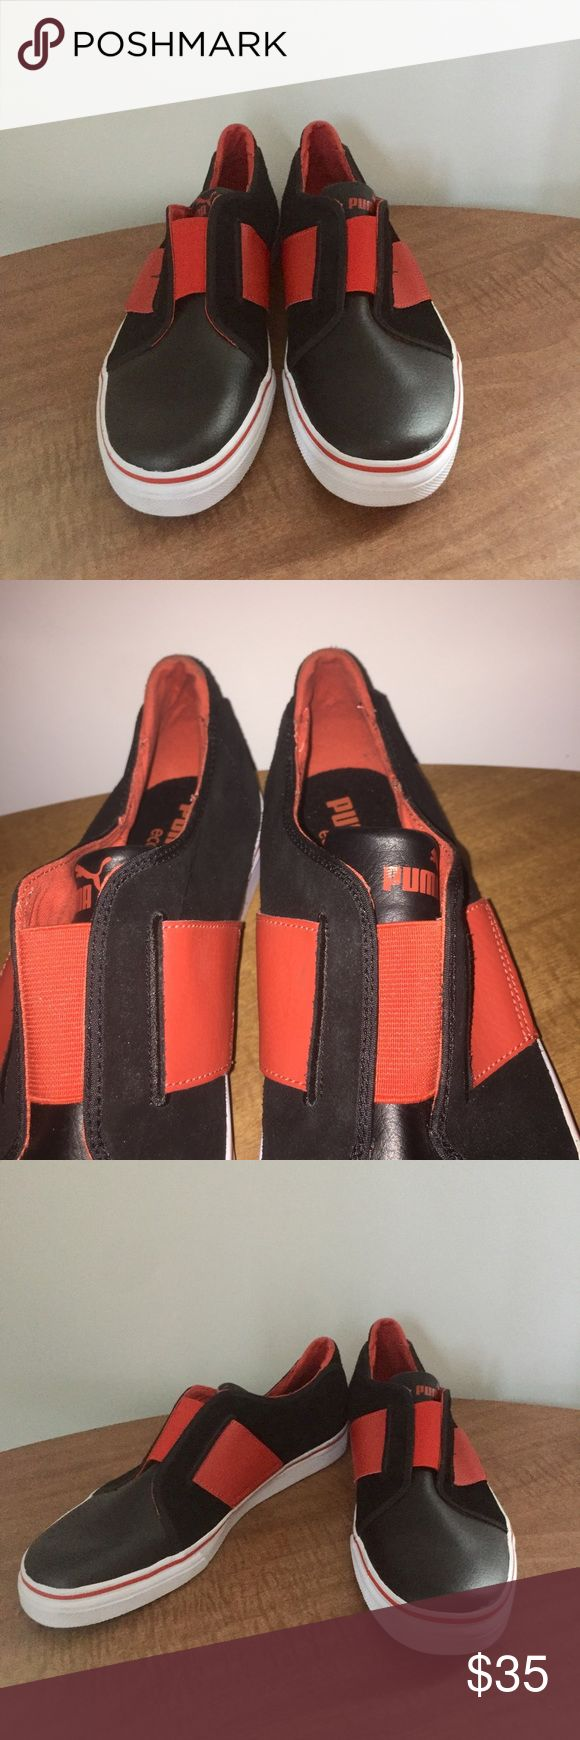 Puma Black And Ref Slip-Ons Very stylish and comfortable Slip-Ons by Puma. Brand new in black and red. These have shiny leather and suede with a red Elastic band across the top. Puma Shoes Sneakers